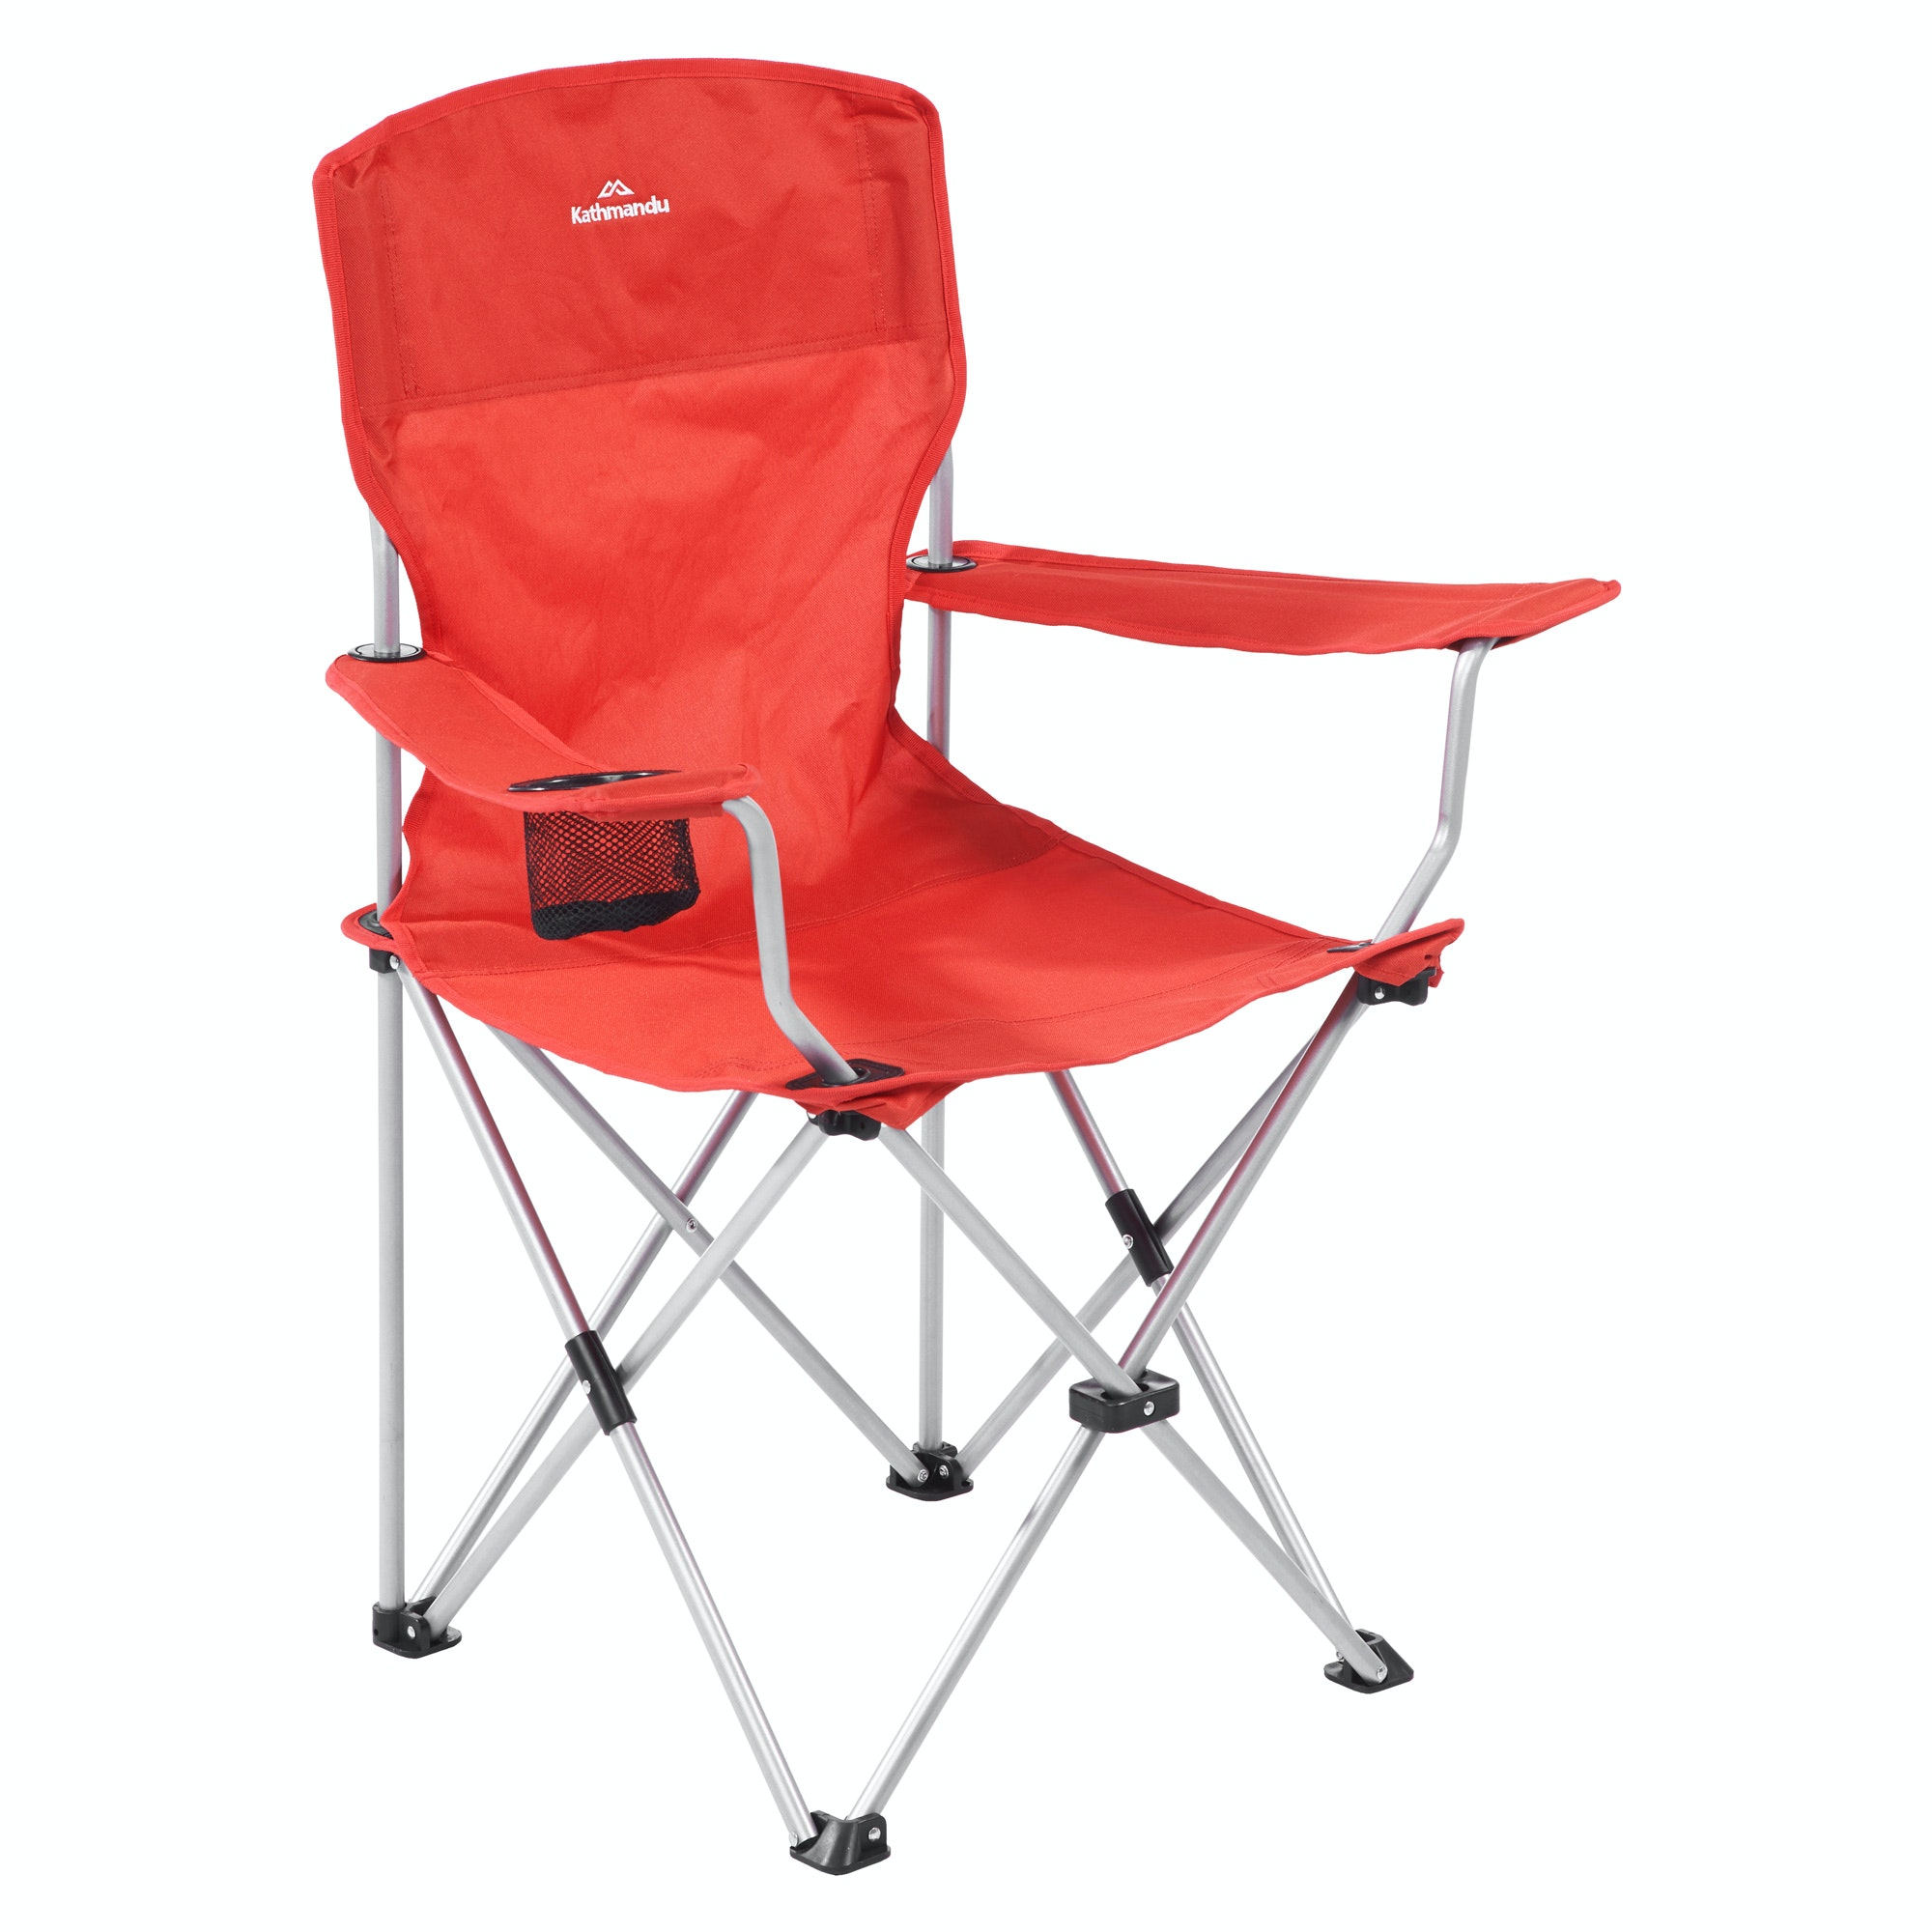 portable picnic chair what height should a rail go kathmandu roamer folding camping